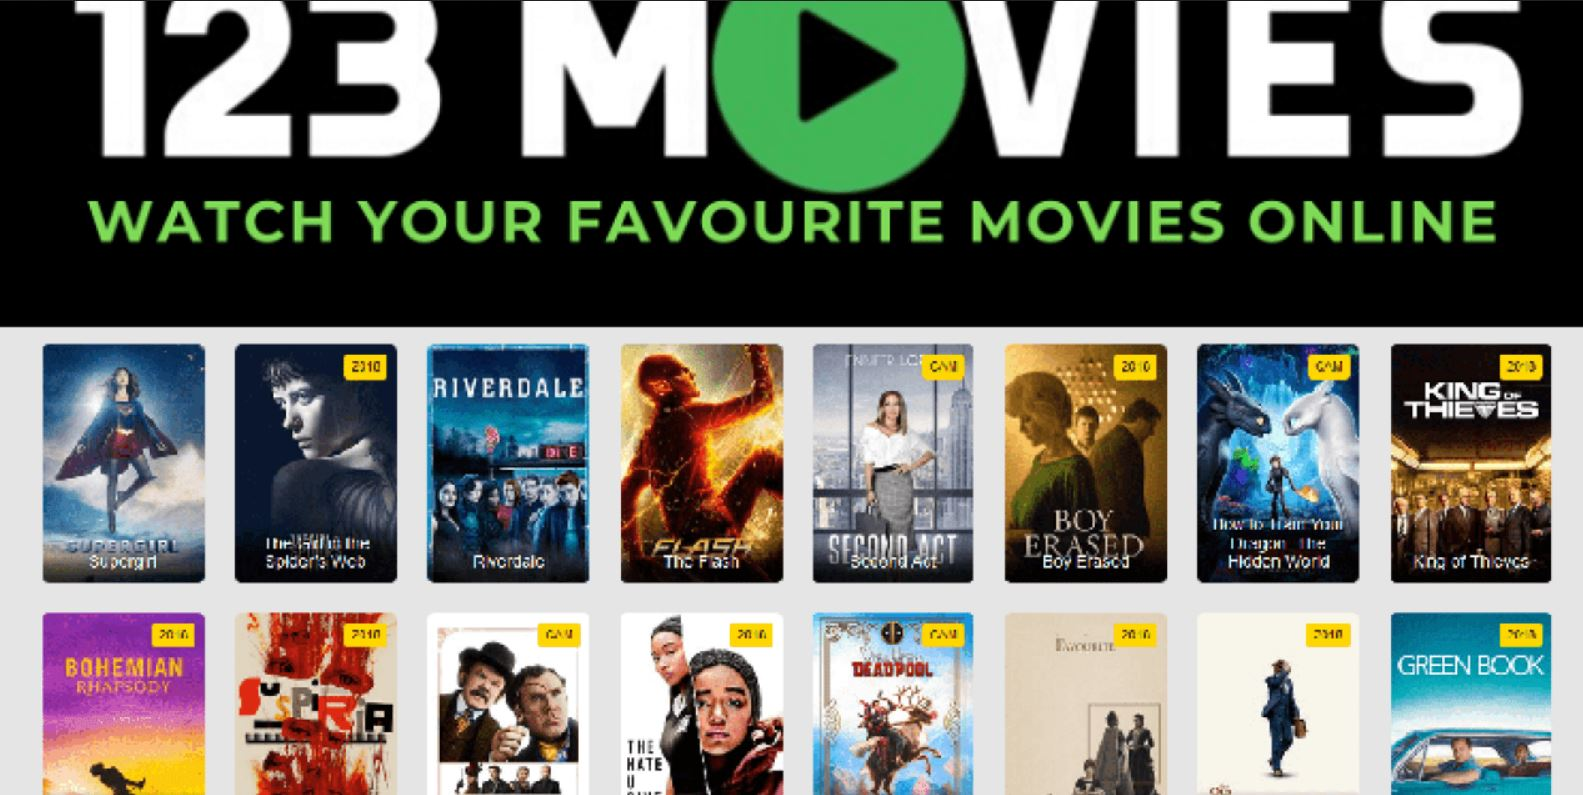 123movies How To Download Movies From 123movies 2020 Illegal Hd All Movies Download Website